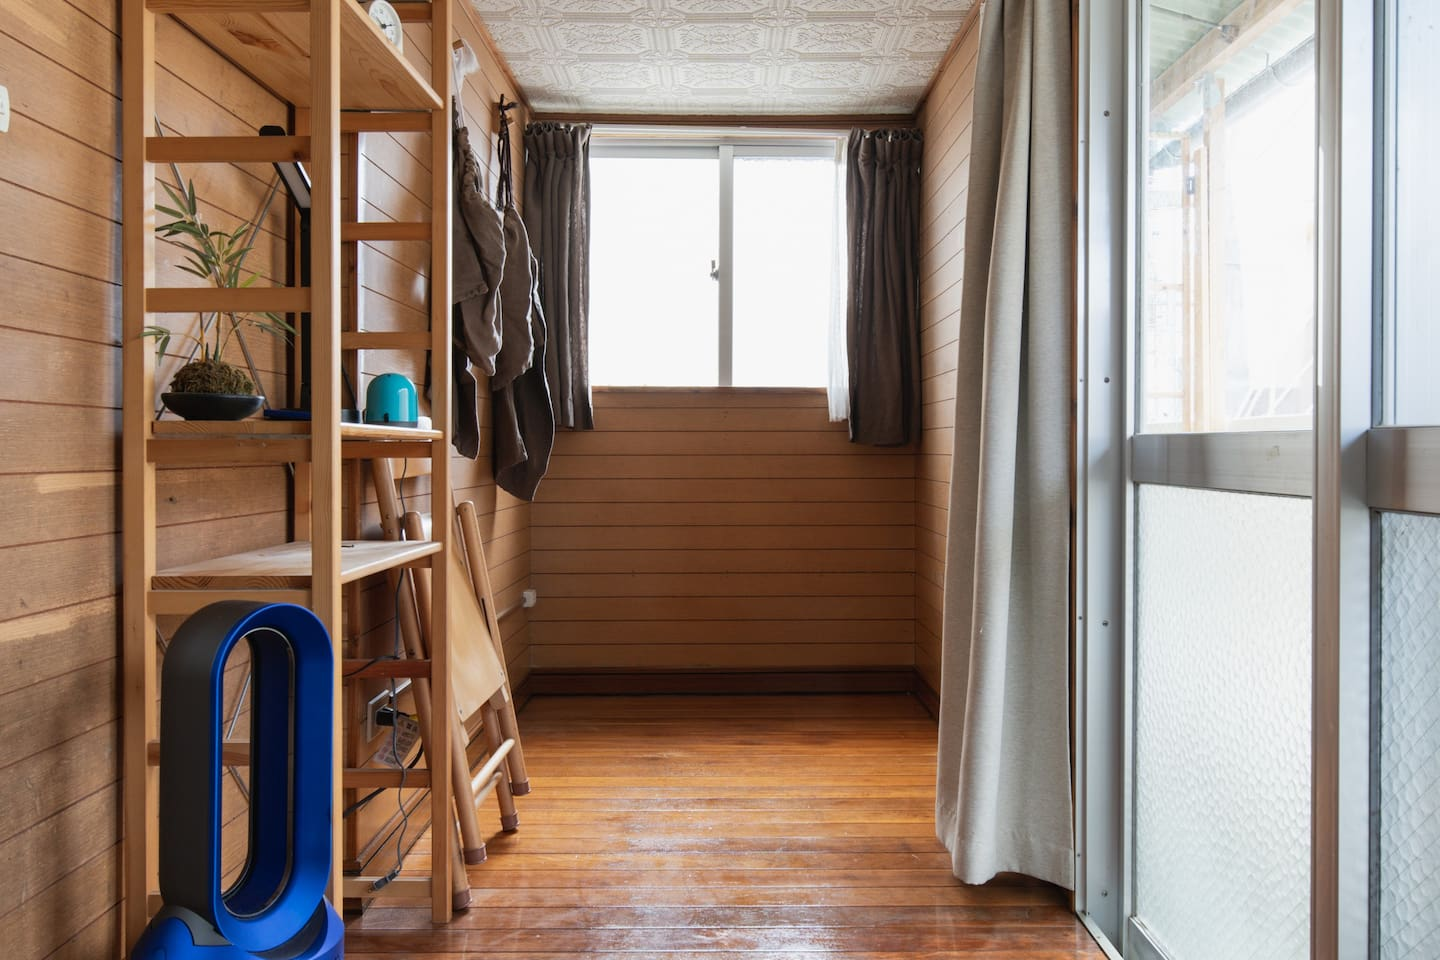 This is the single room that was available. But now there is a larger room available. The new room available has tatami  floors and it's larger.